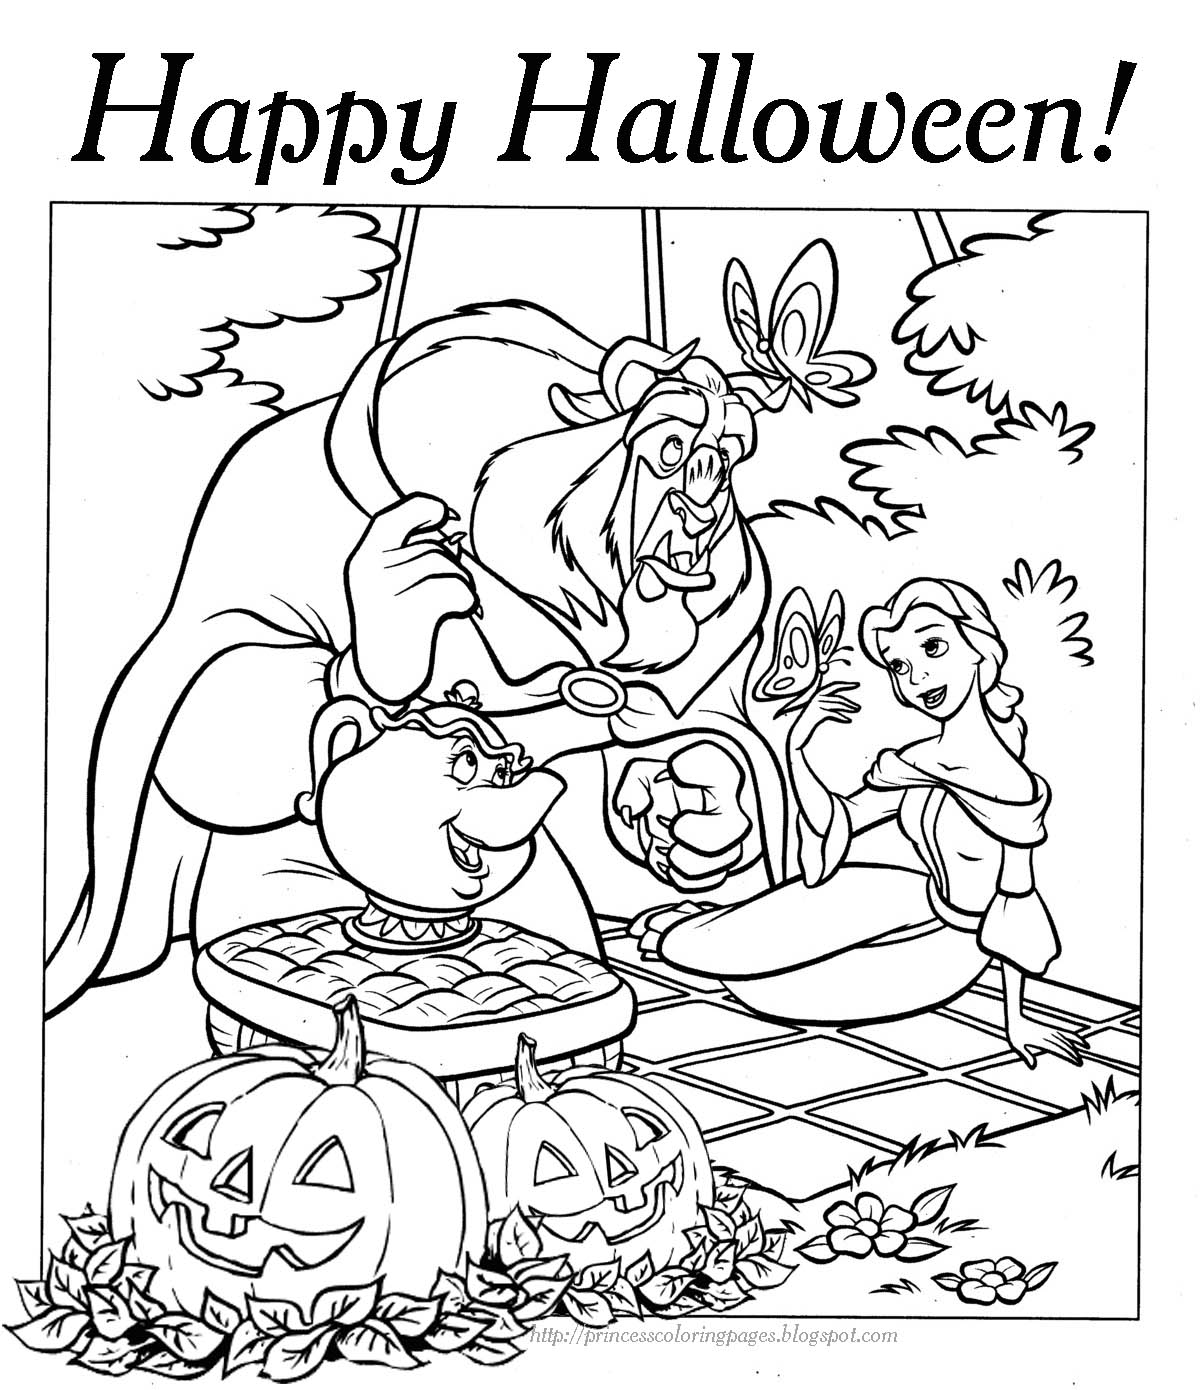 halloween coloring pages online halloween coloring pages trick or treat coloring pages coloring pages halloween online